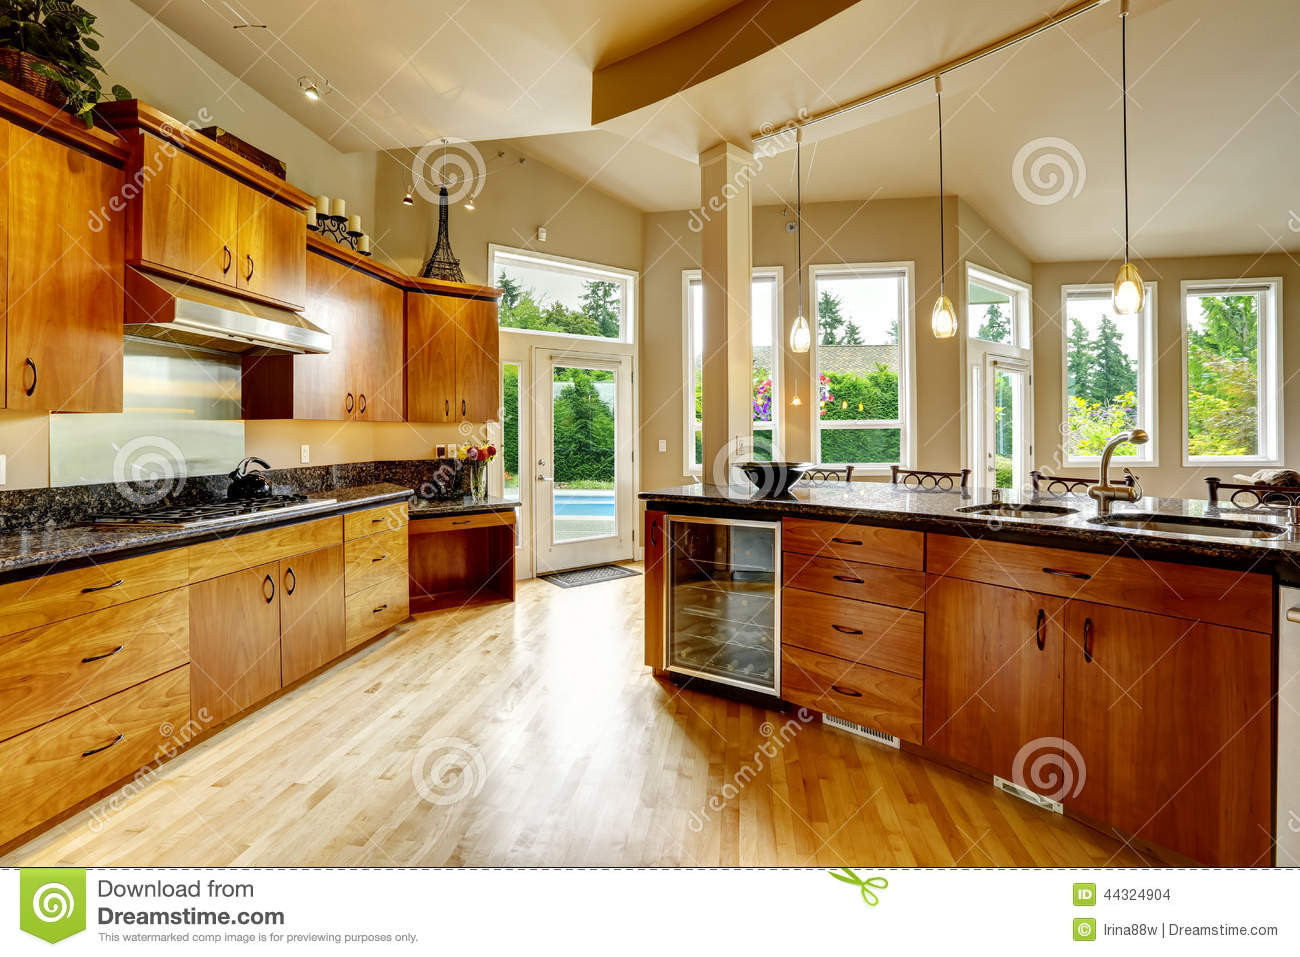 Kitchen Interior In Luxury House Real Estate In WA Stock Photo  Image 44324904